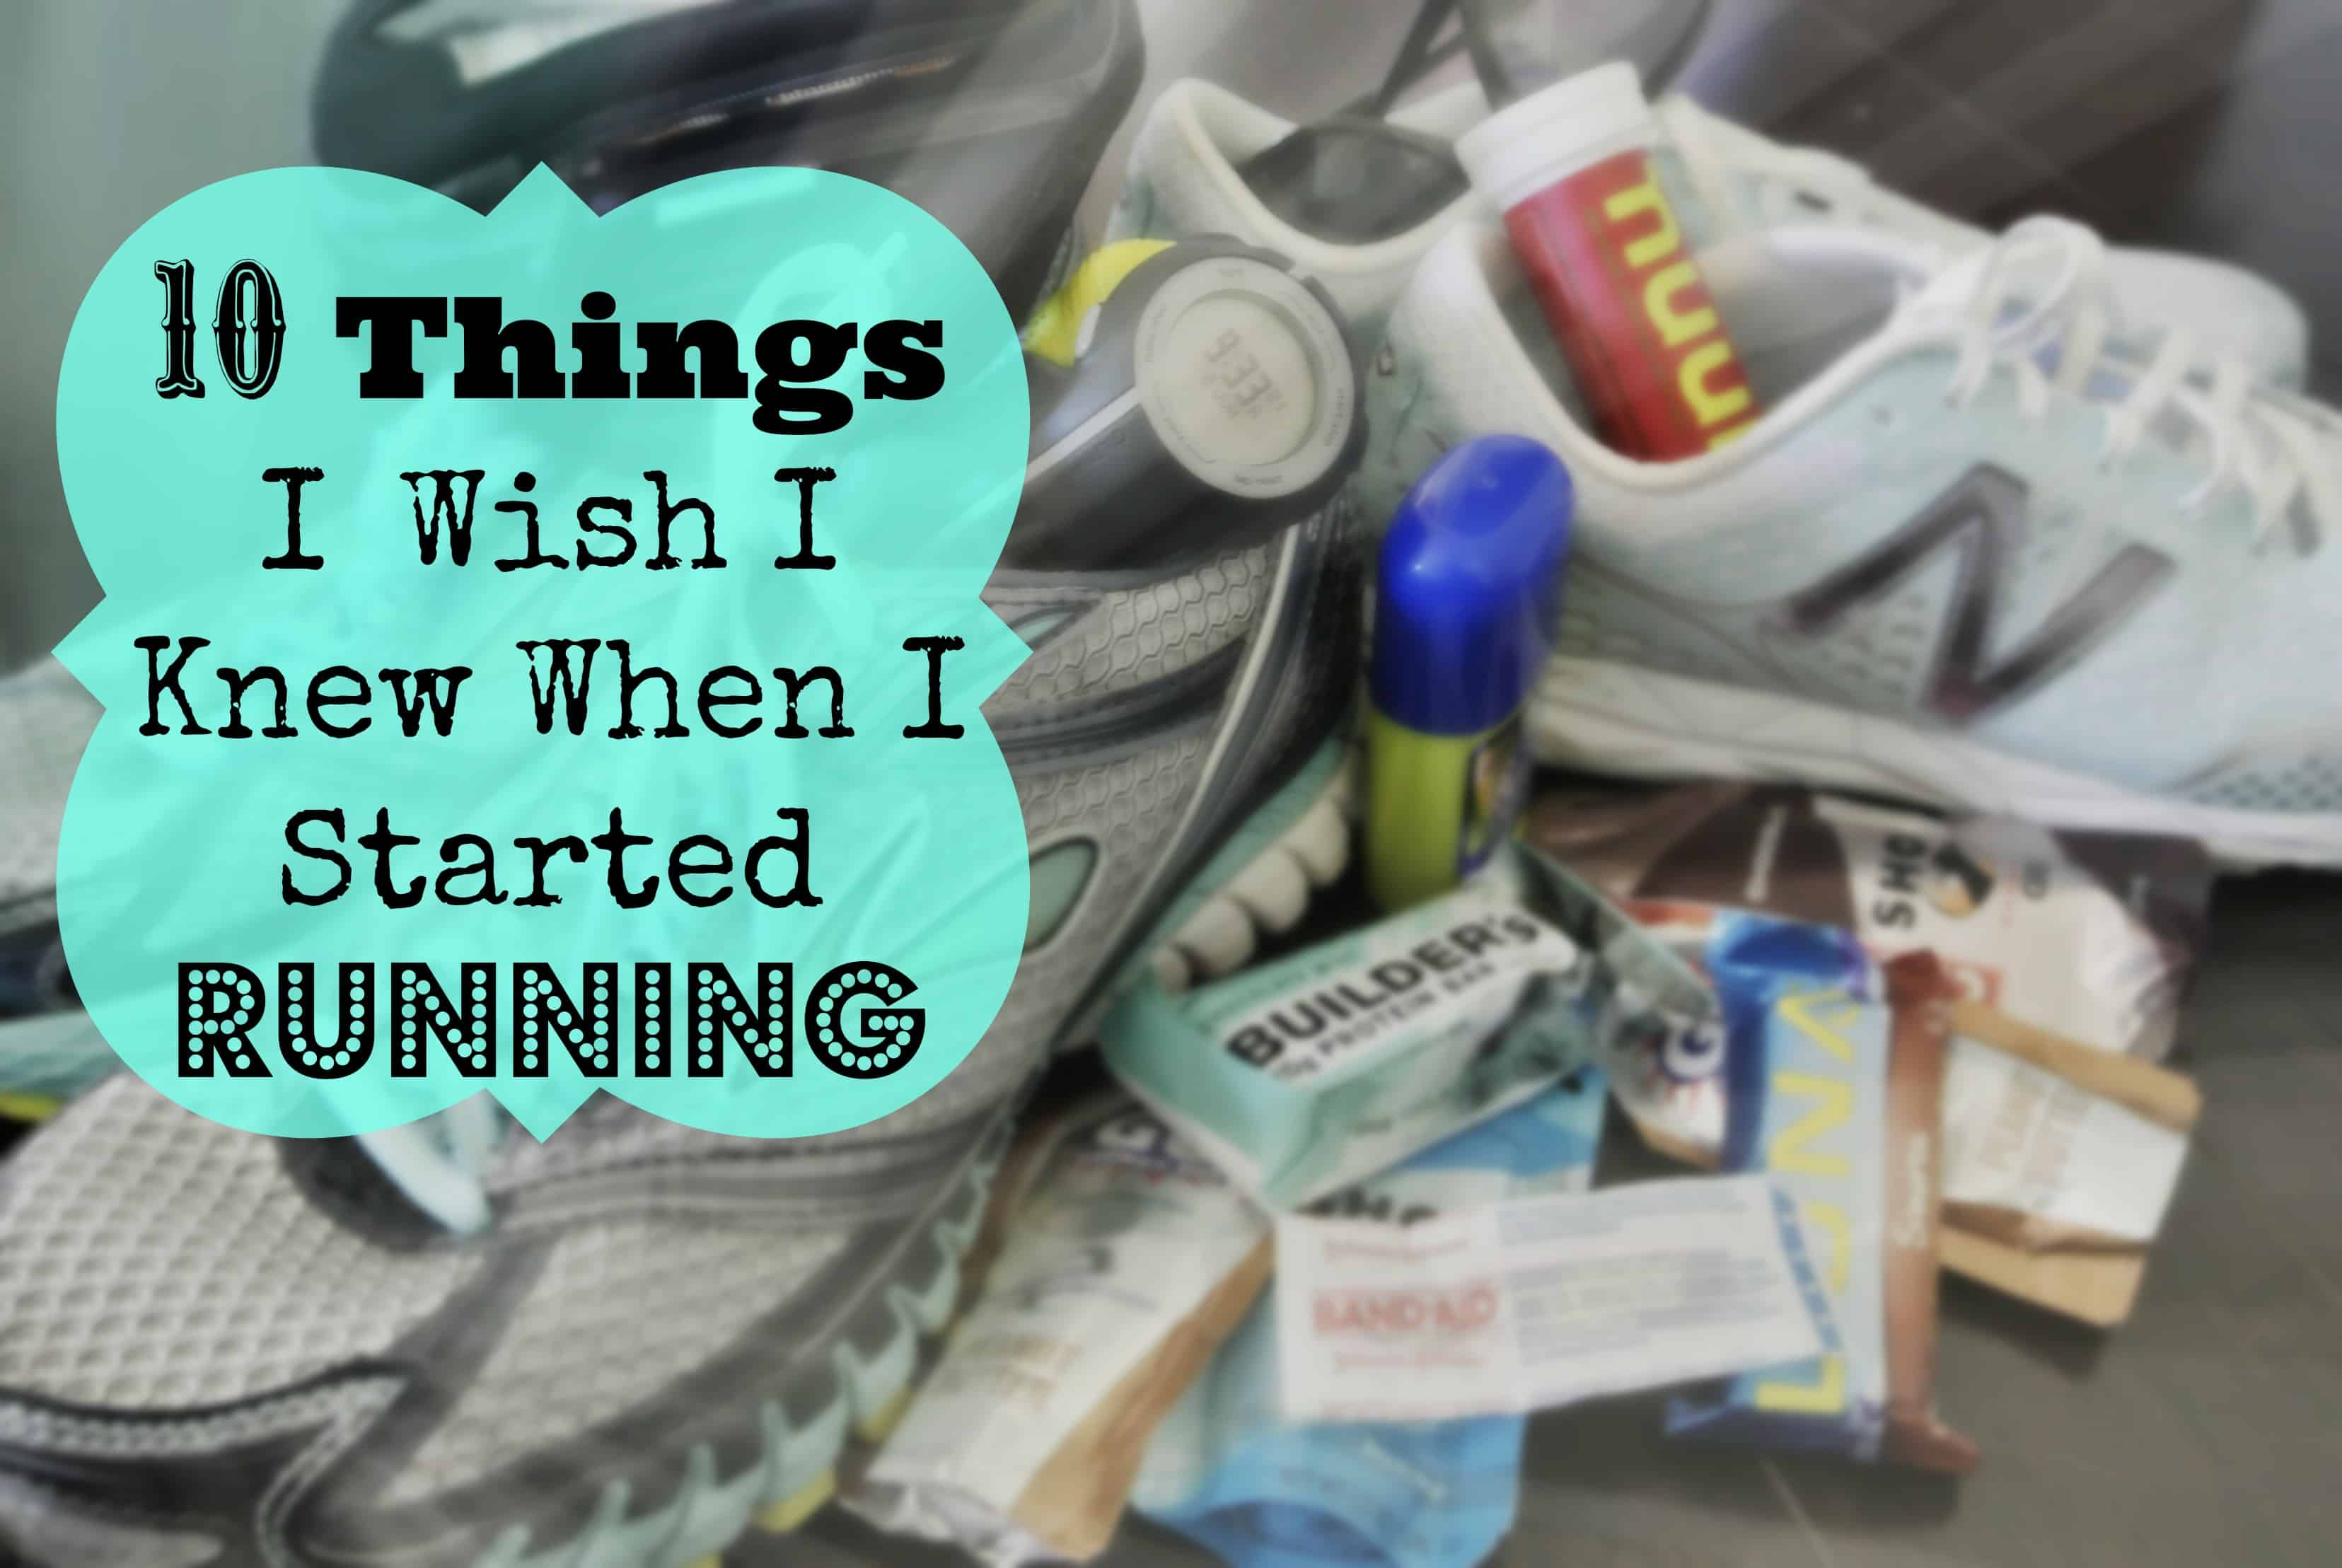 10 things when started running